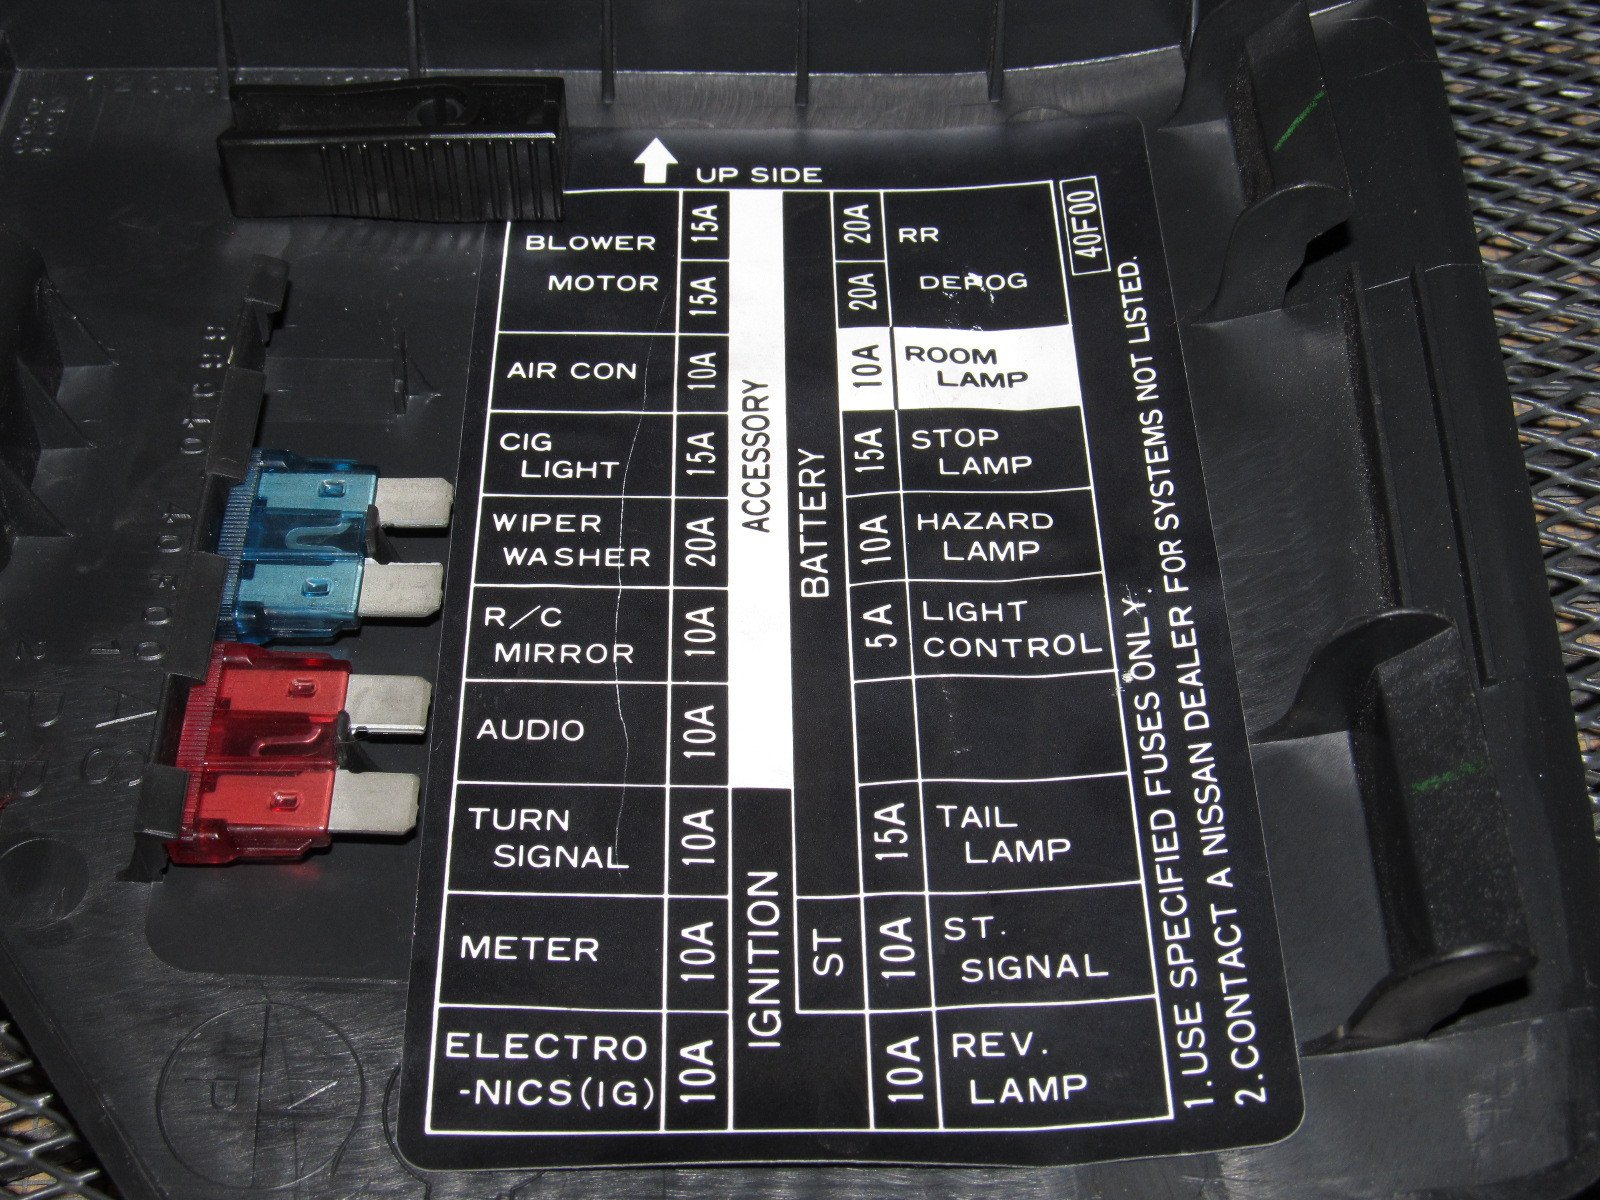 95 240sx fuse diagram s14 fuse box layout wiring diagram data  s14 fuse box layout wiring diagram data